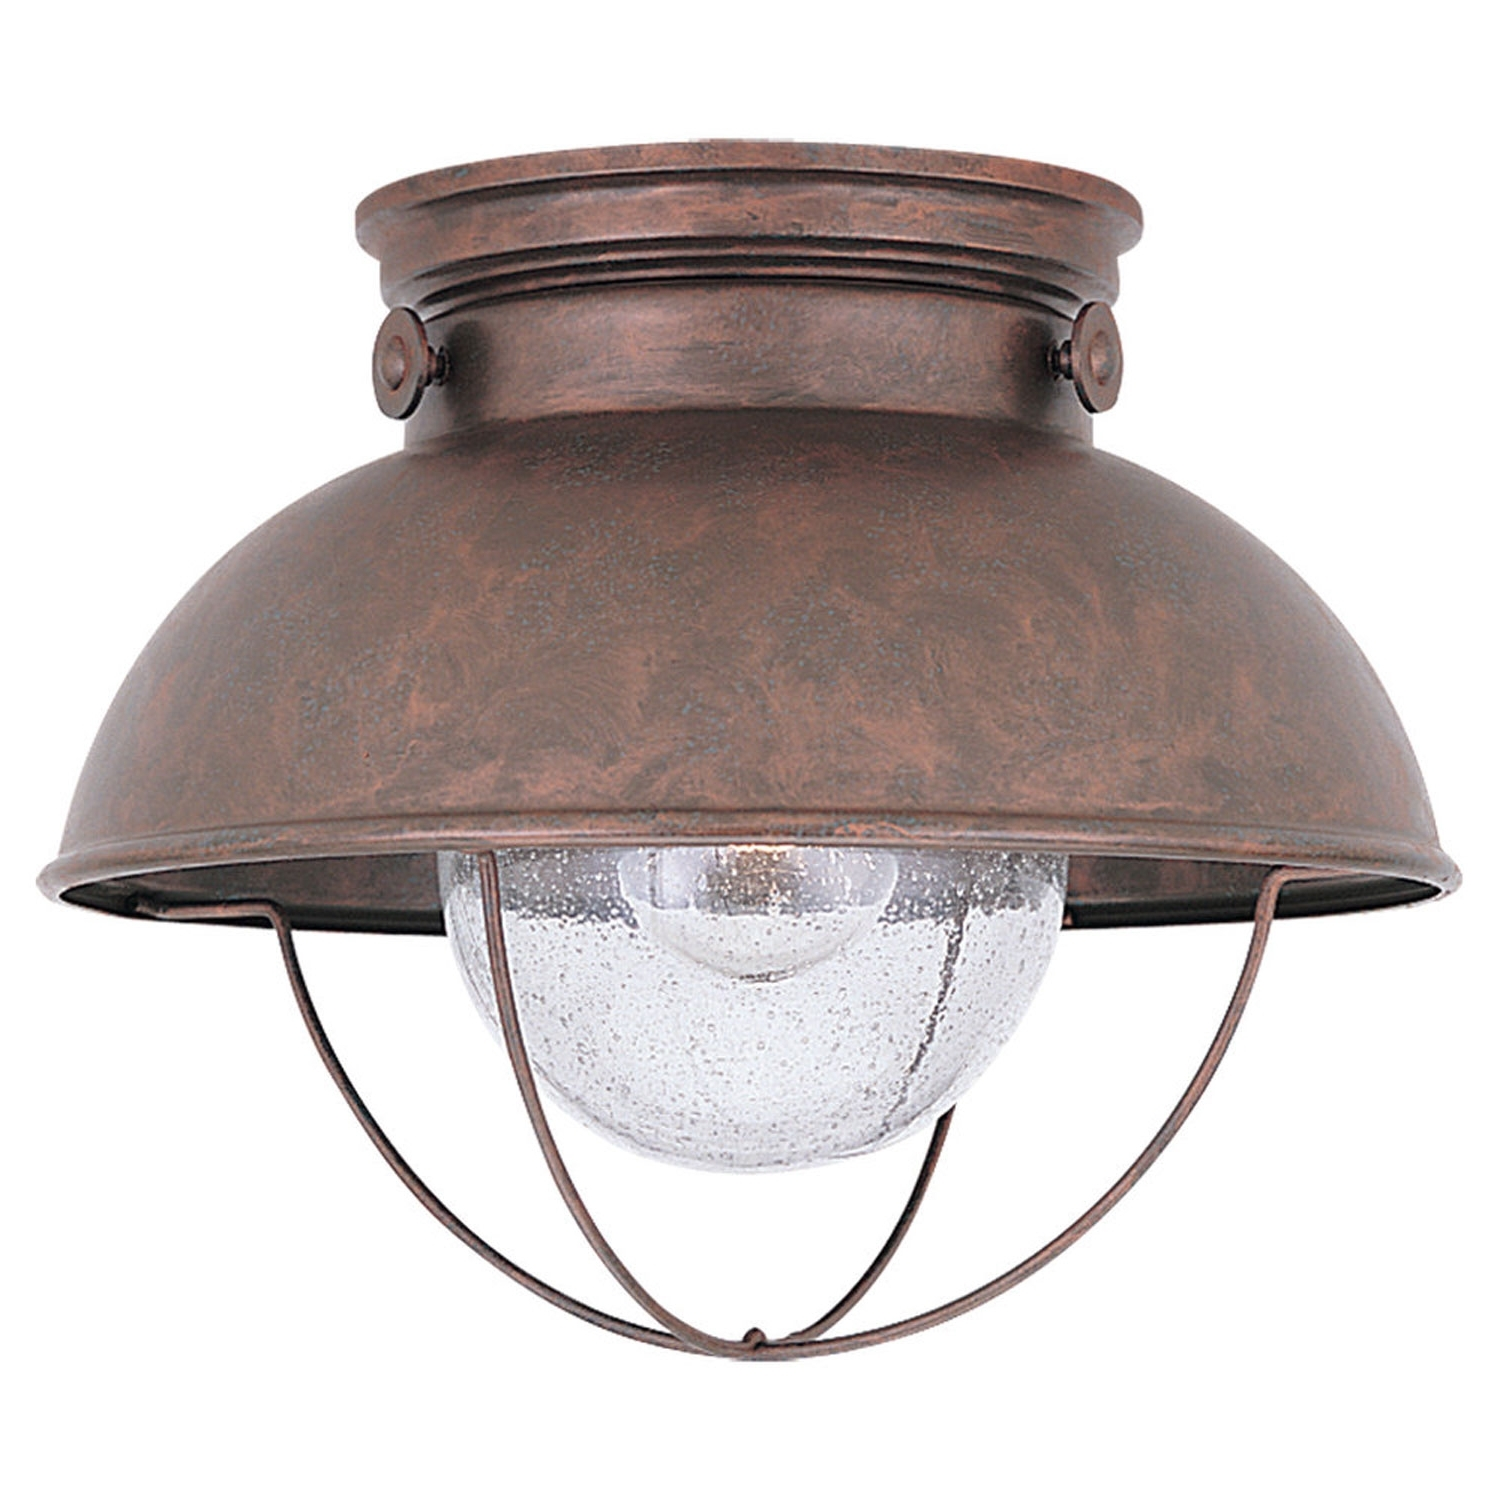 Outdoor Ceiling Lighting (View 8 of 20)